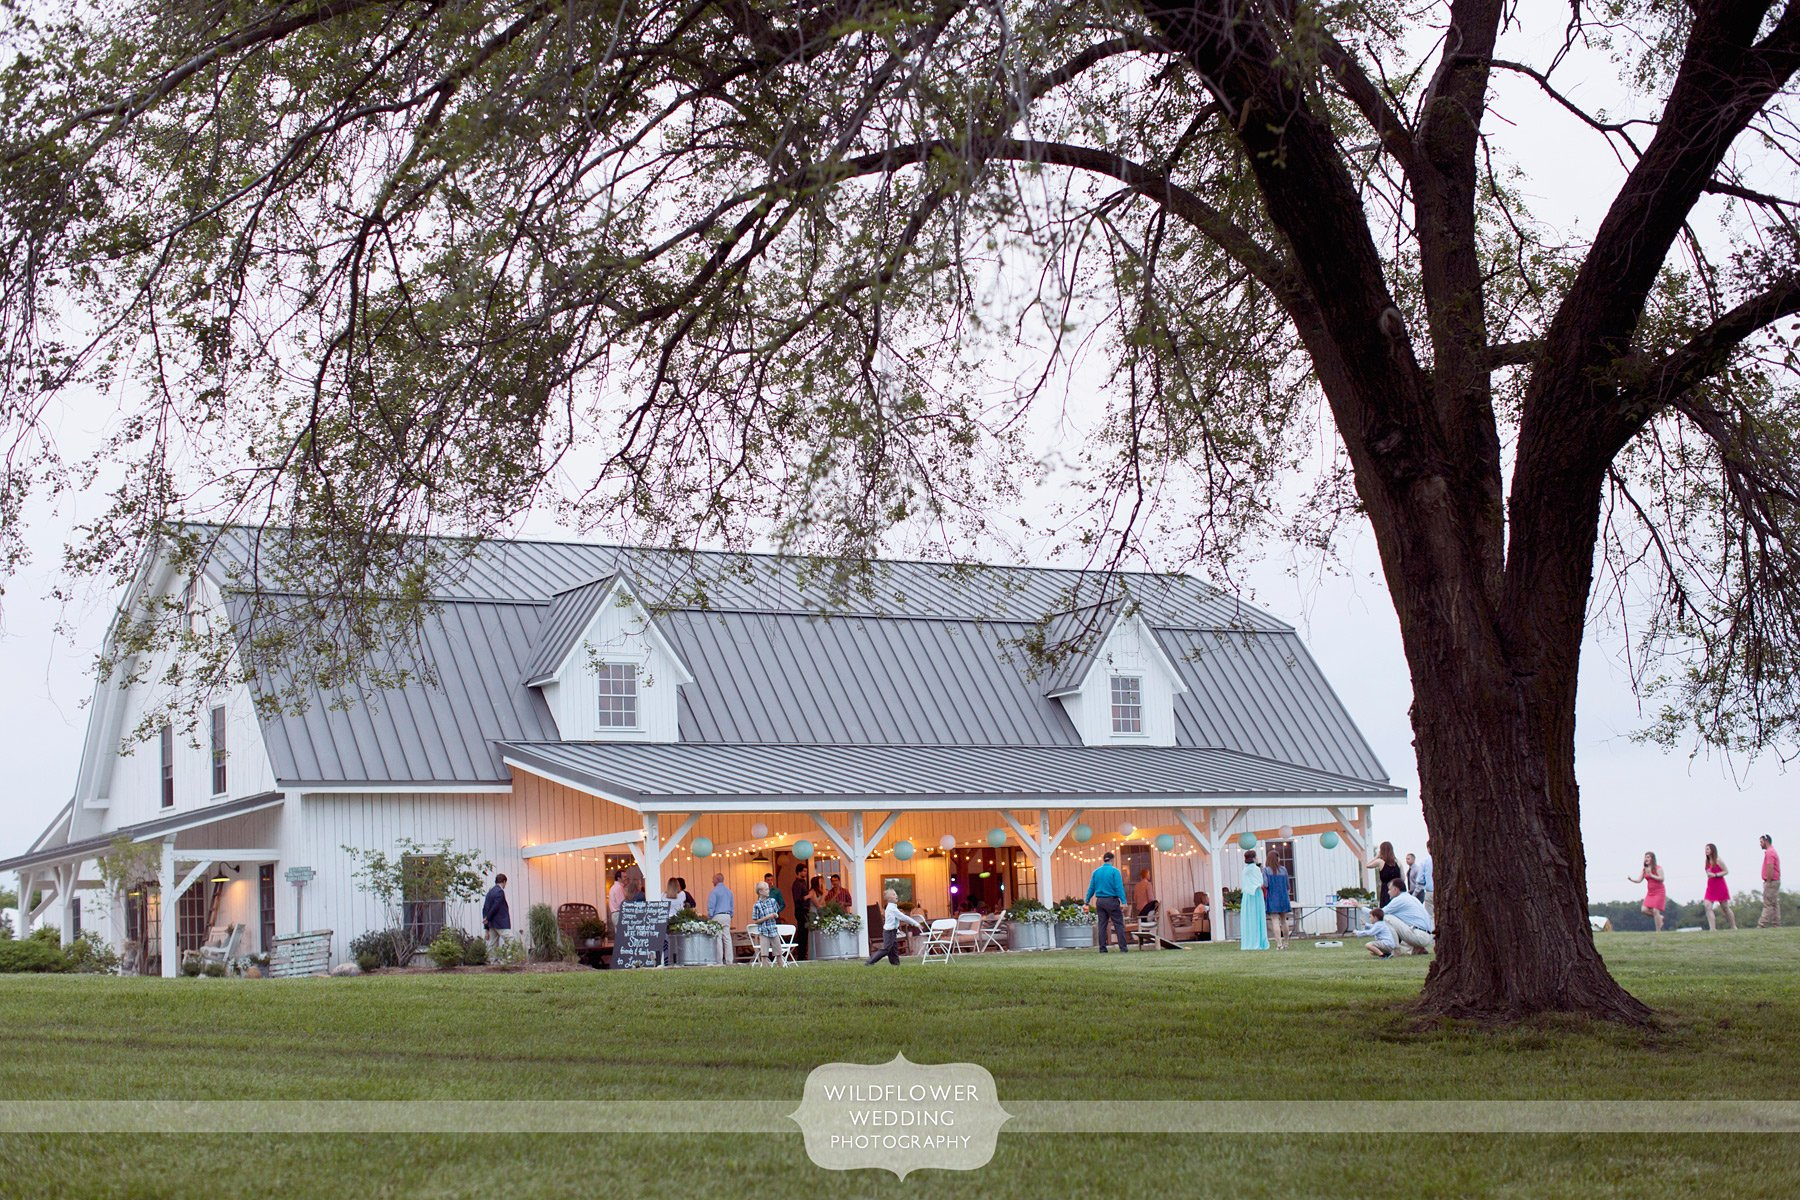 Outdoor Barn Wedding near Columbia, MO - Blue Bell Farm